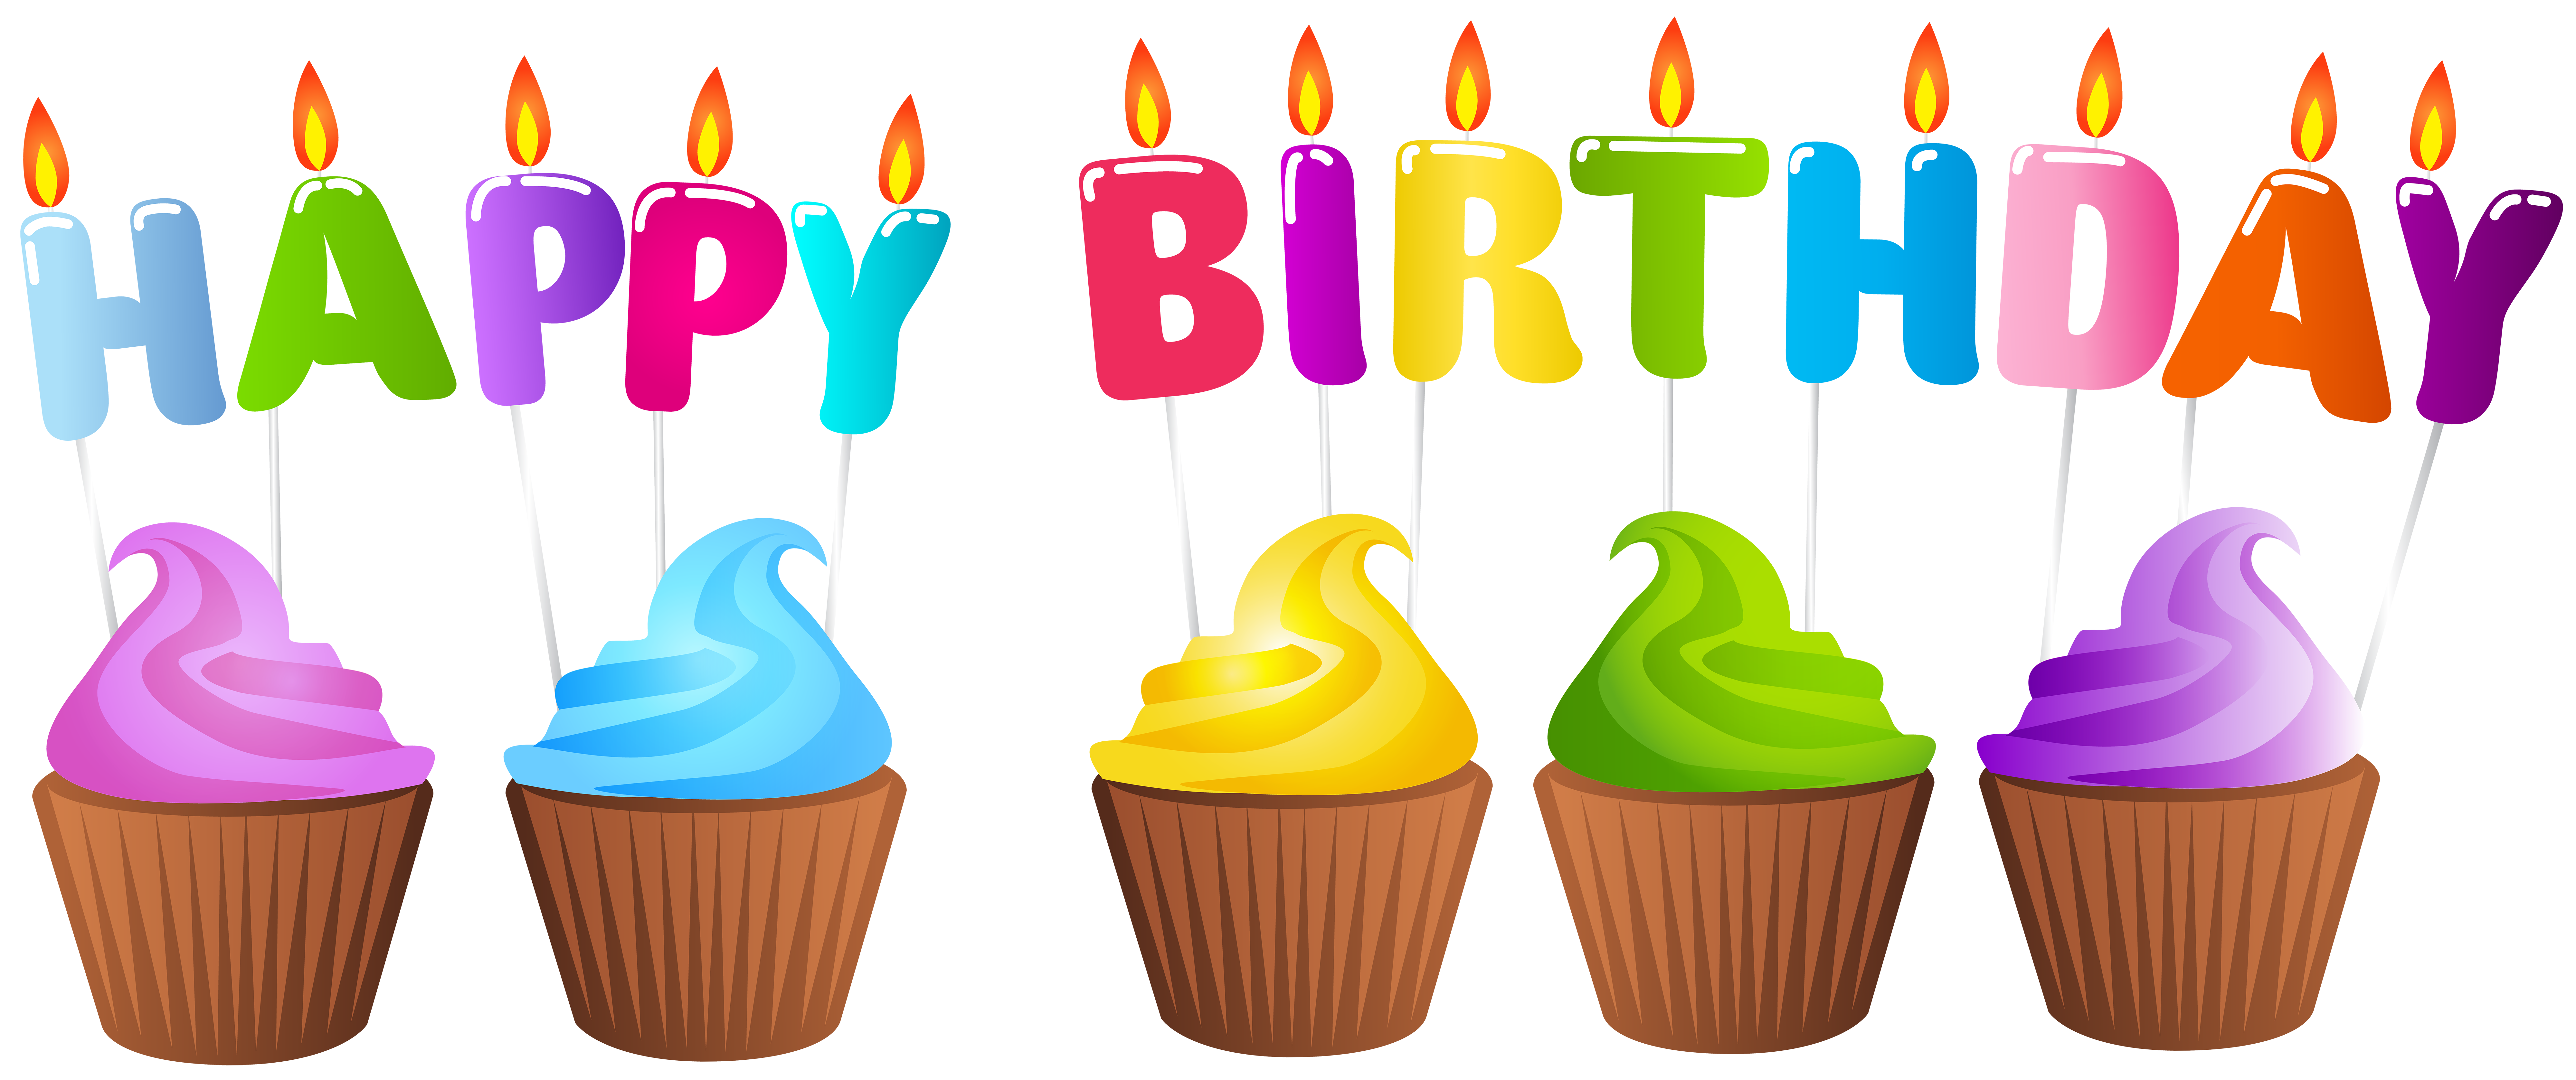 Transparent candles happy birthday. Muffins png clip art